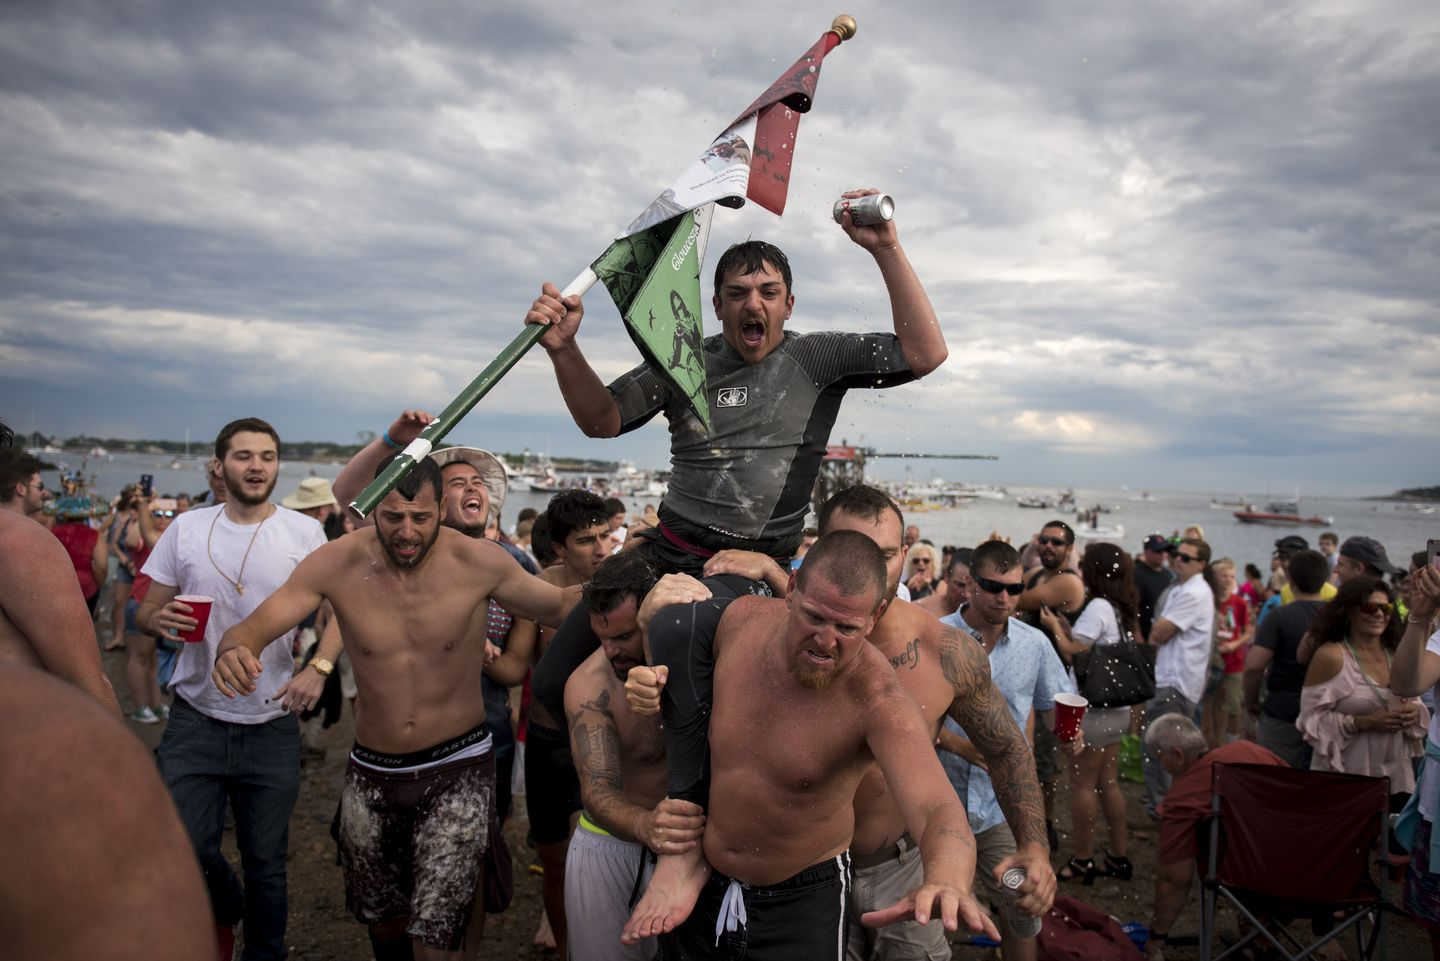 Gloucester residen Jack Wagner celebrates his Sunday greasy pole event win.